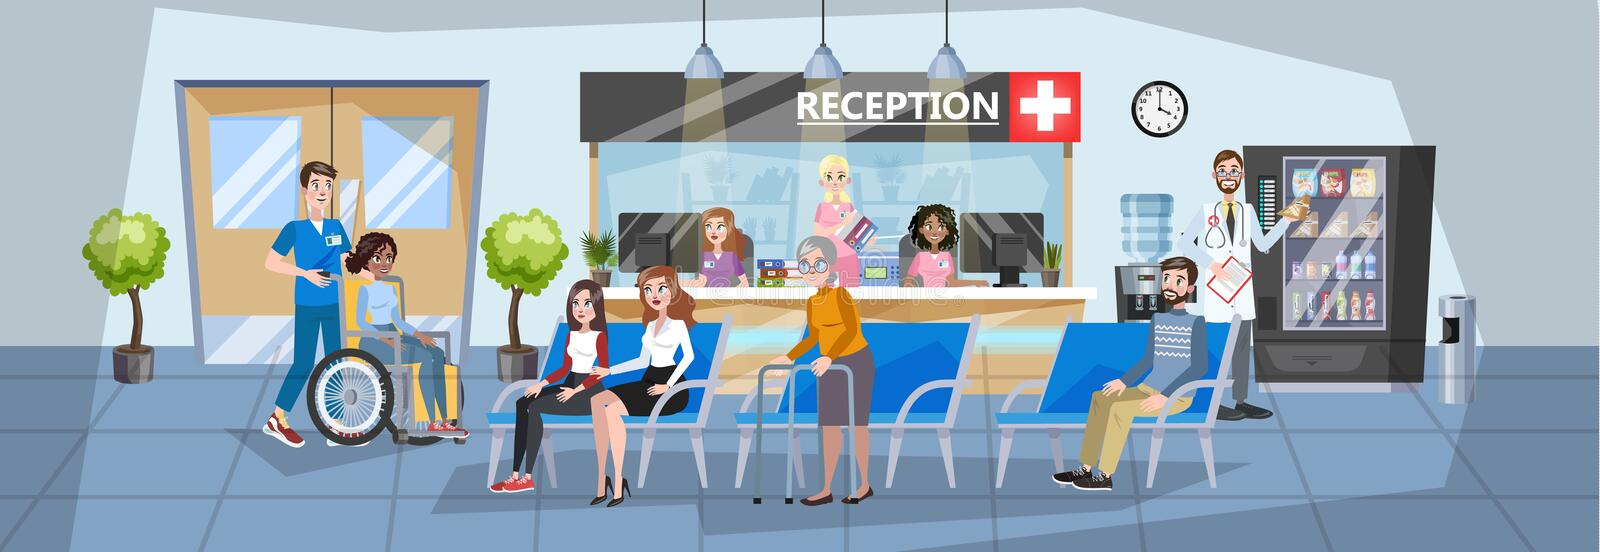 Hospital reception interior. People waiting in queue stock illustration